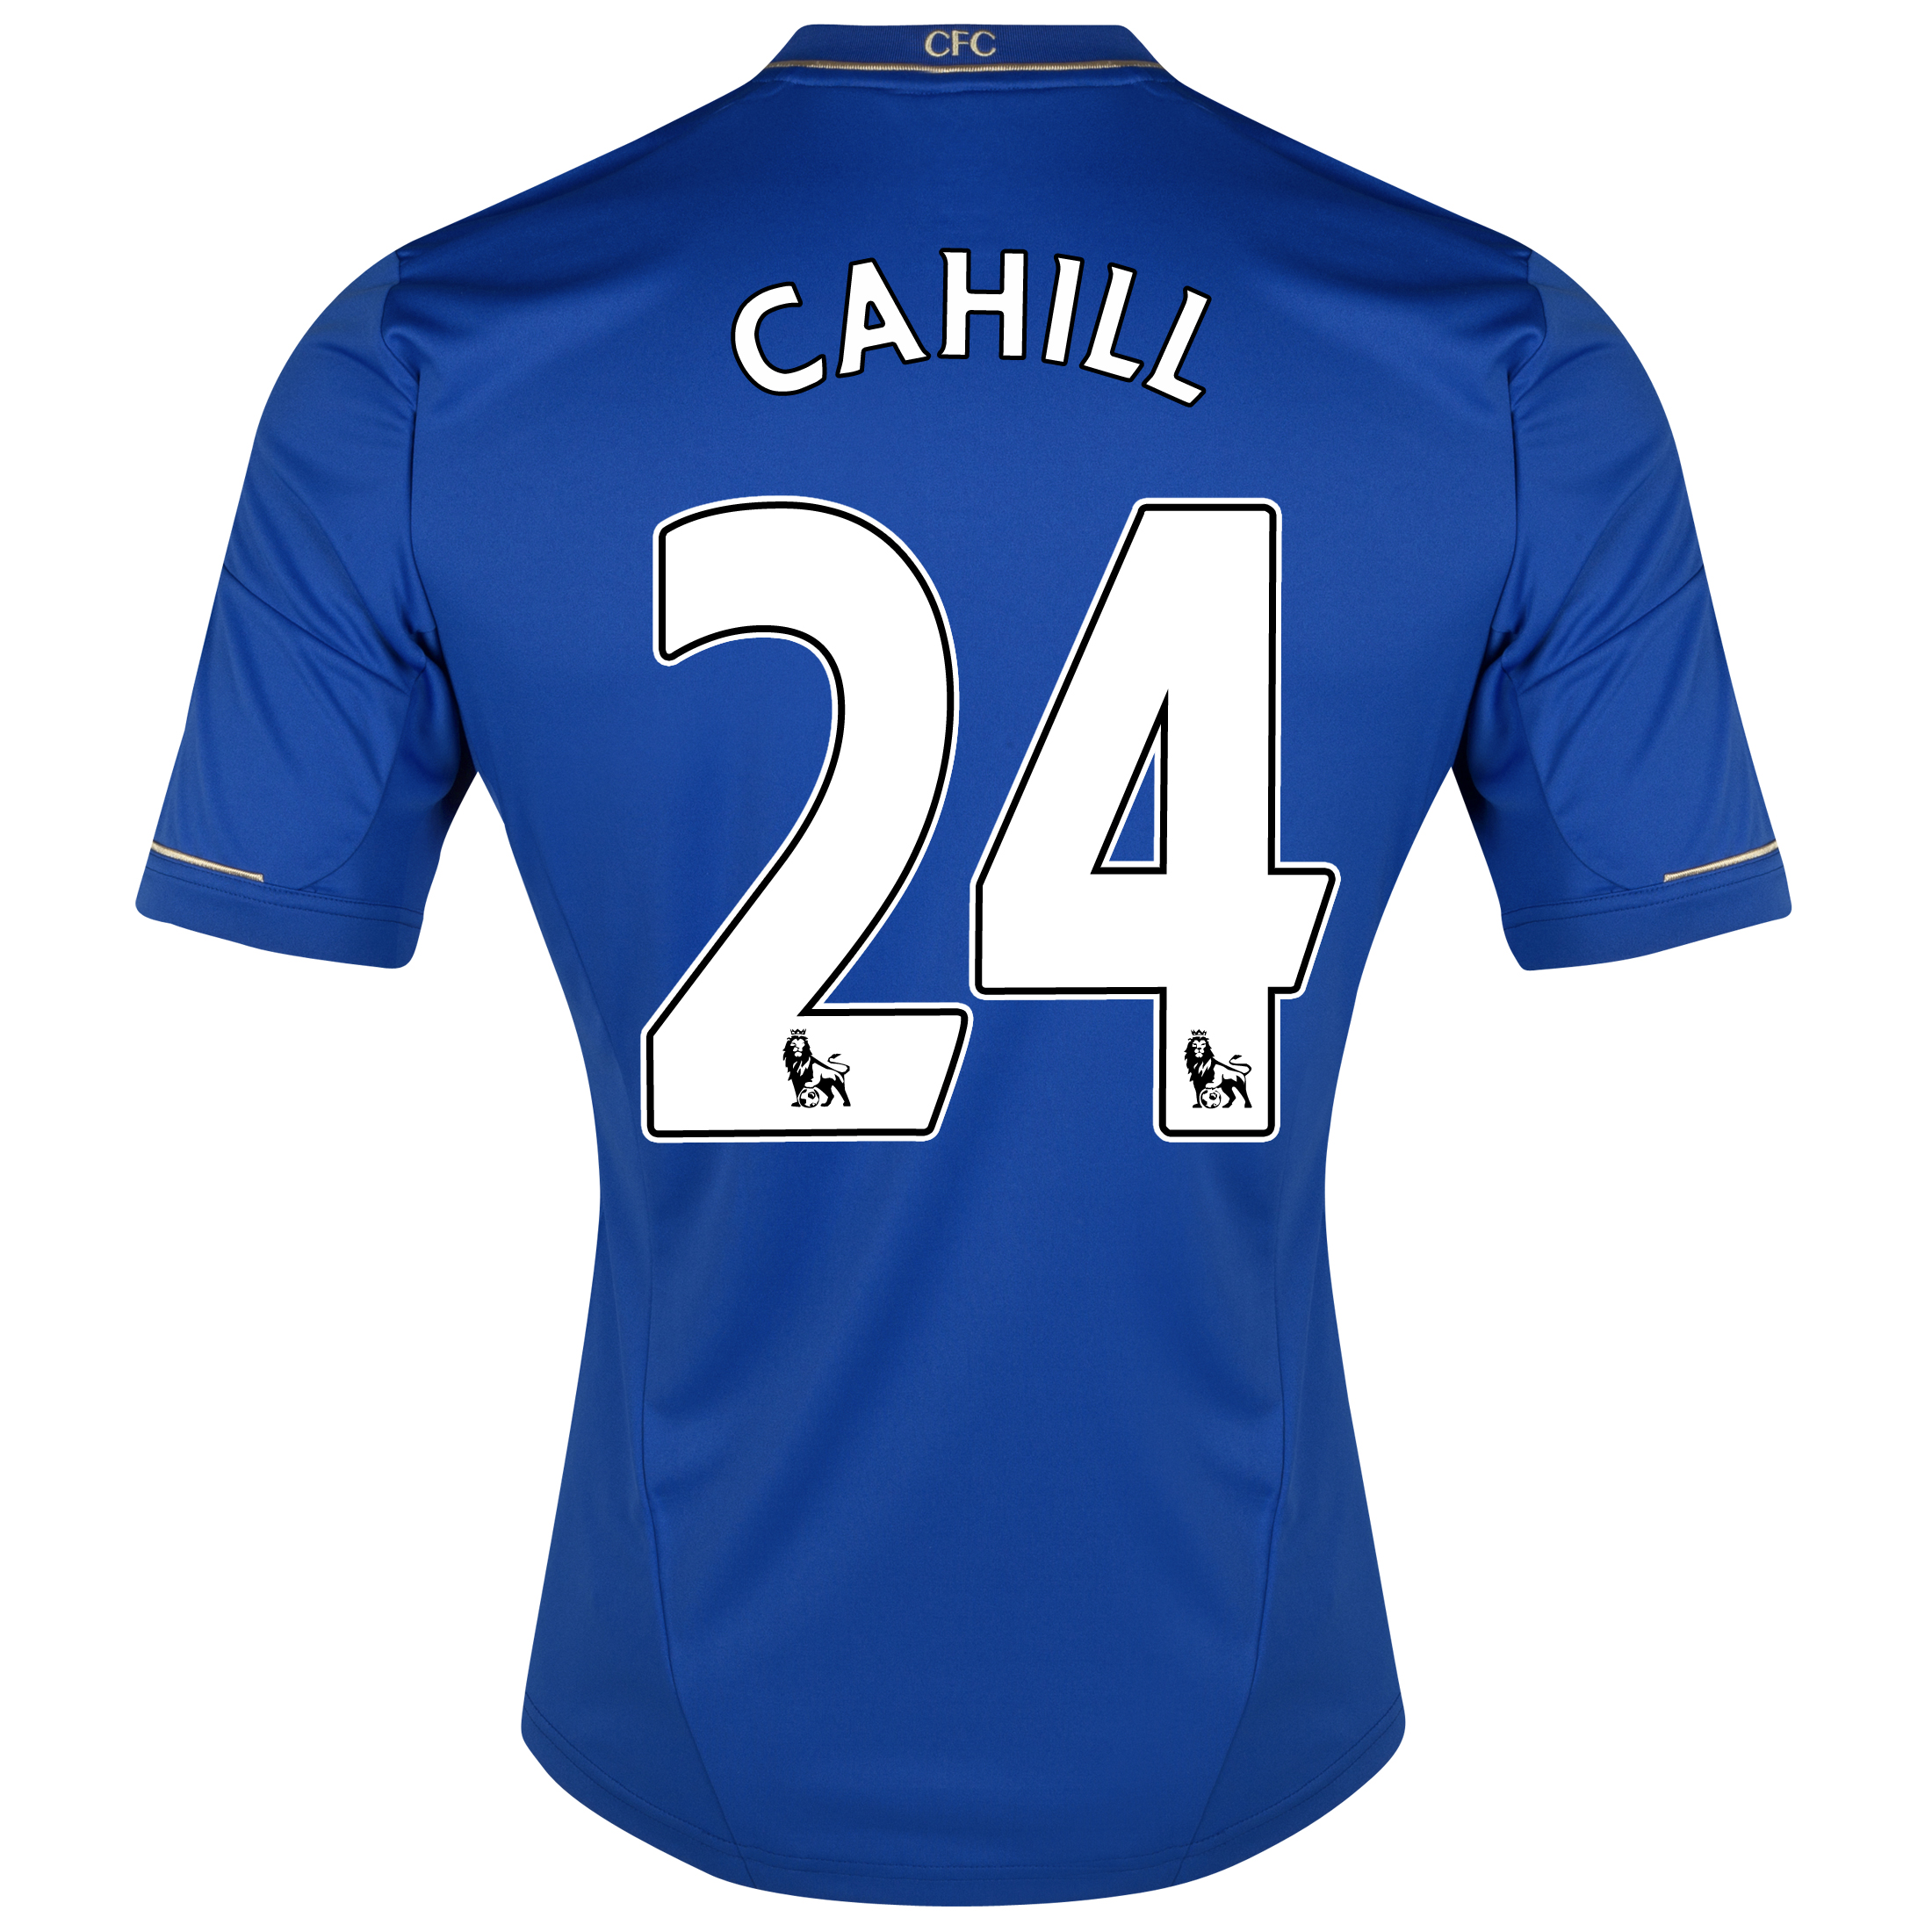 Chelsea Home Shirt 2012/13 - Outsize with Cahill 24 printing